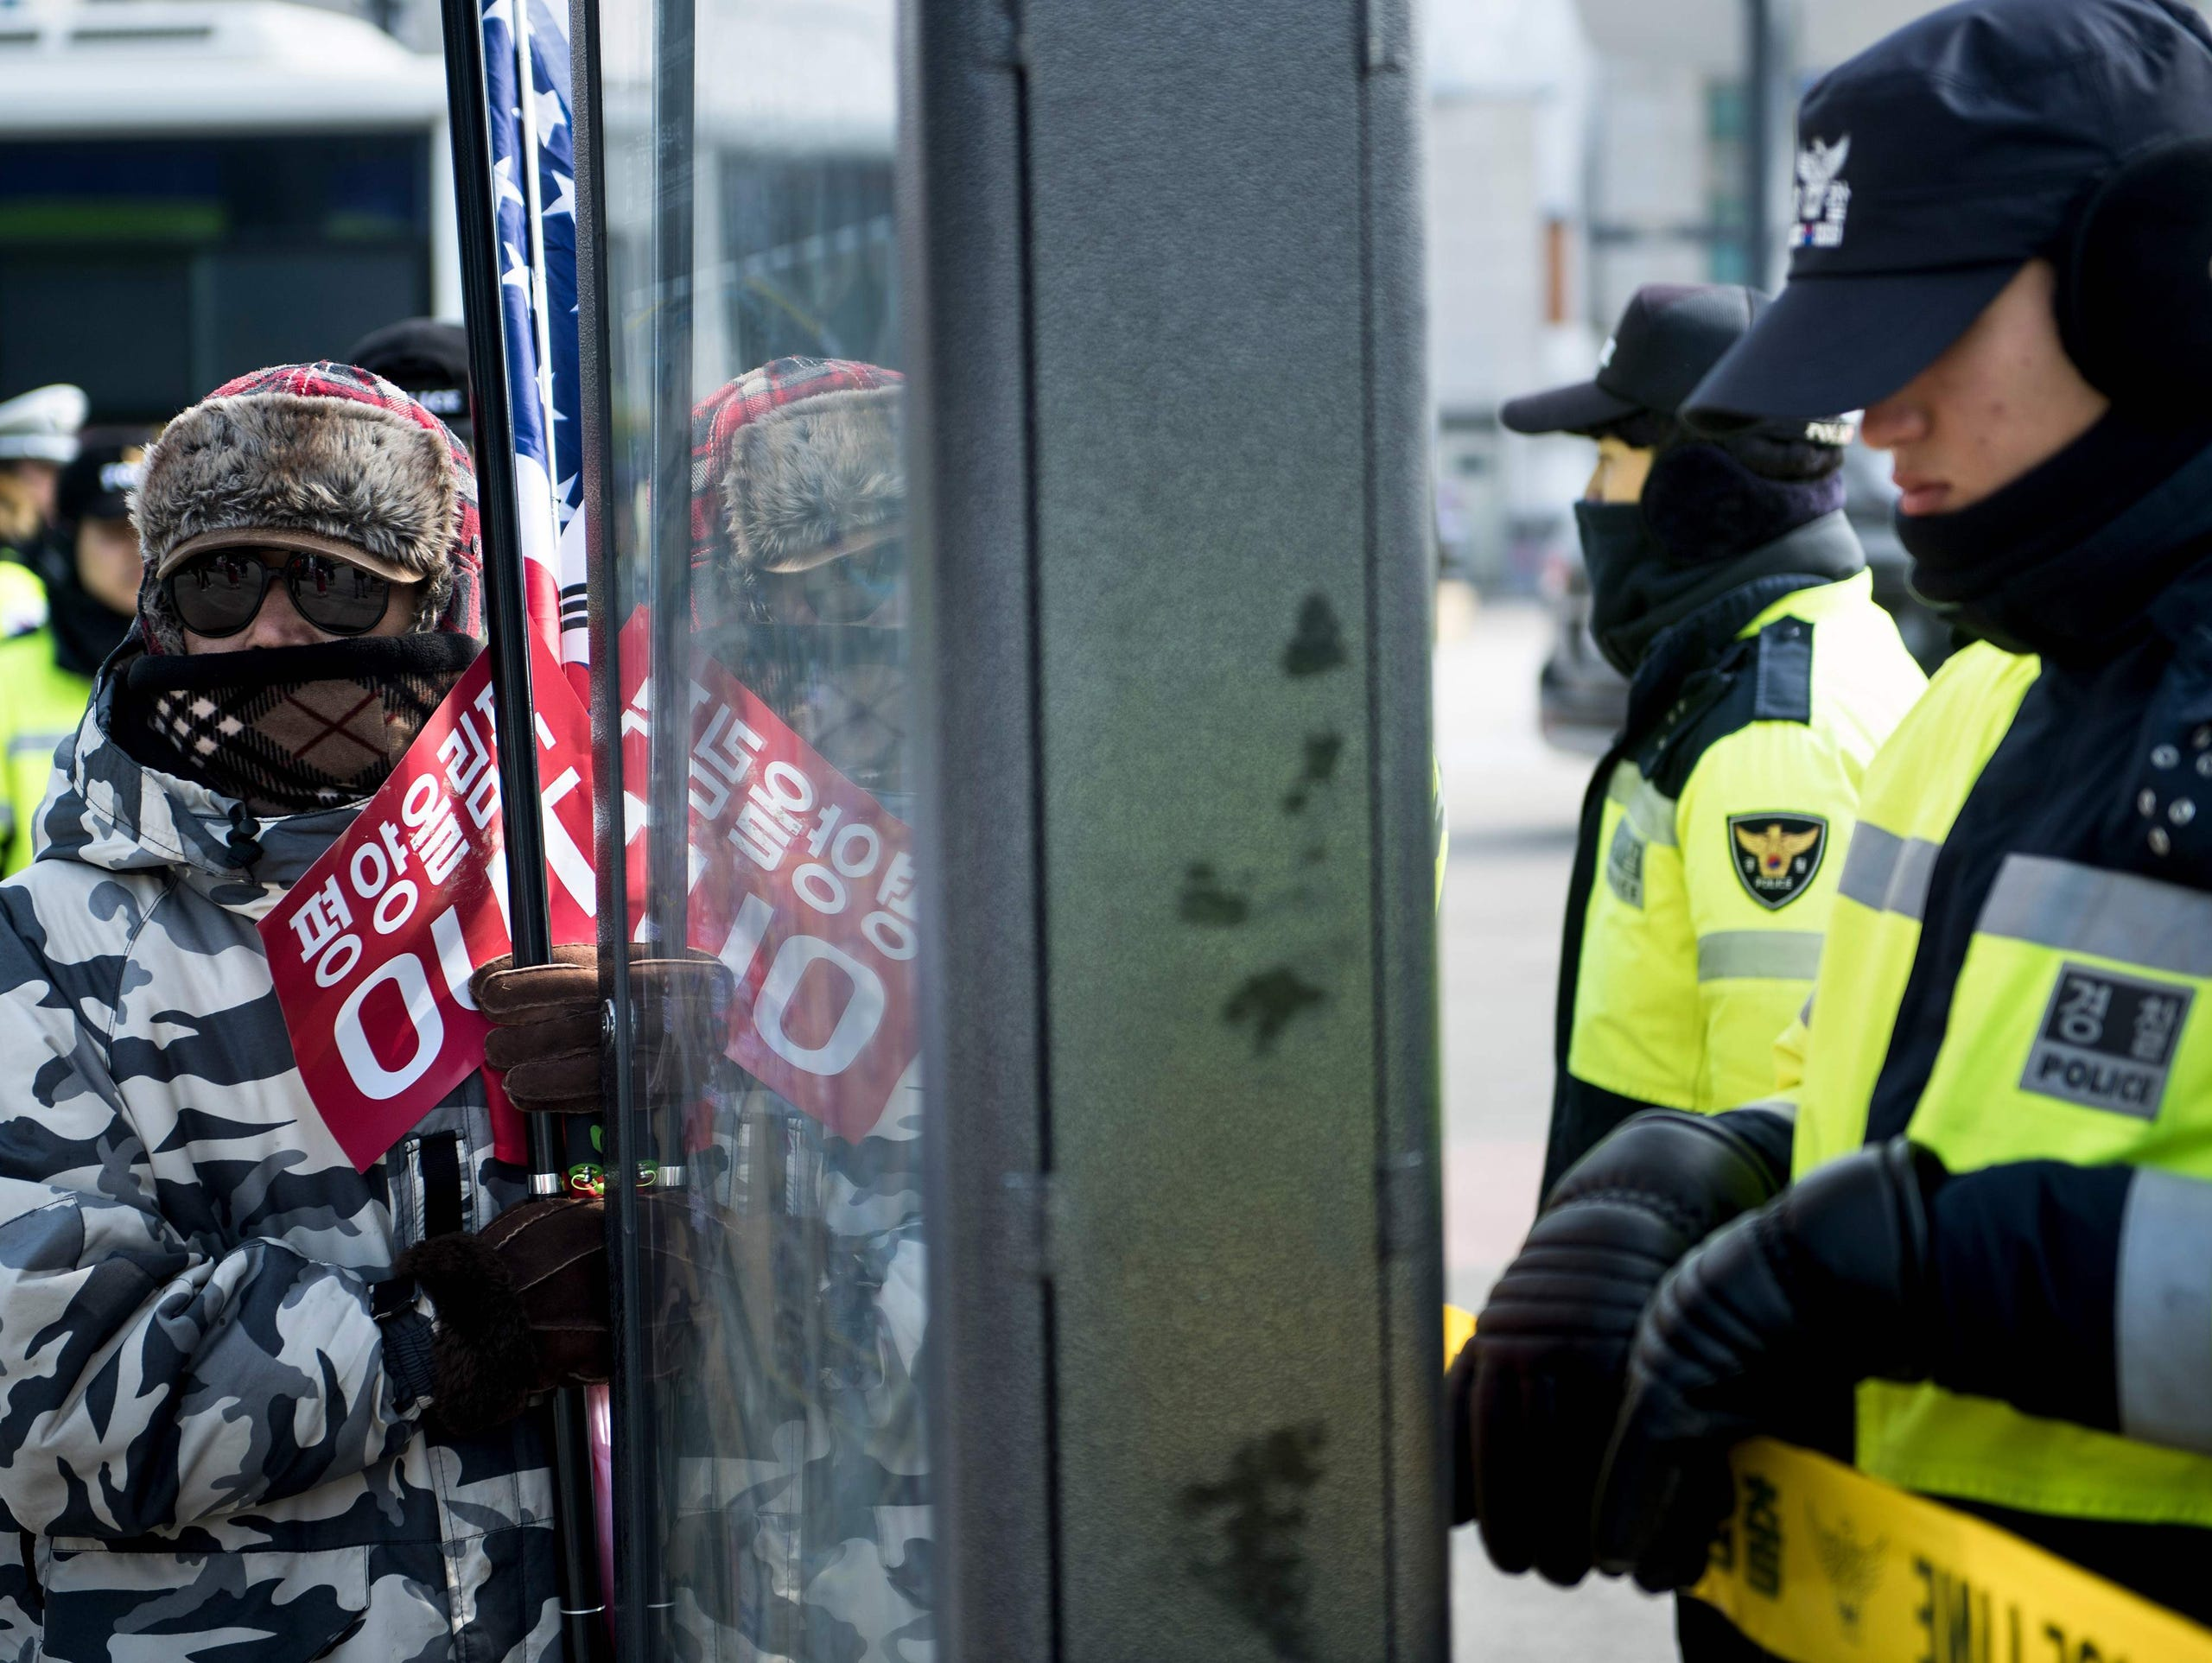 Protesters gathered outside the Olympic Stadium on Friday, before the opening ceremony.